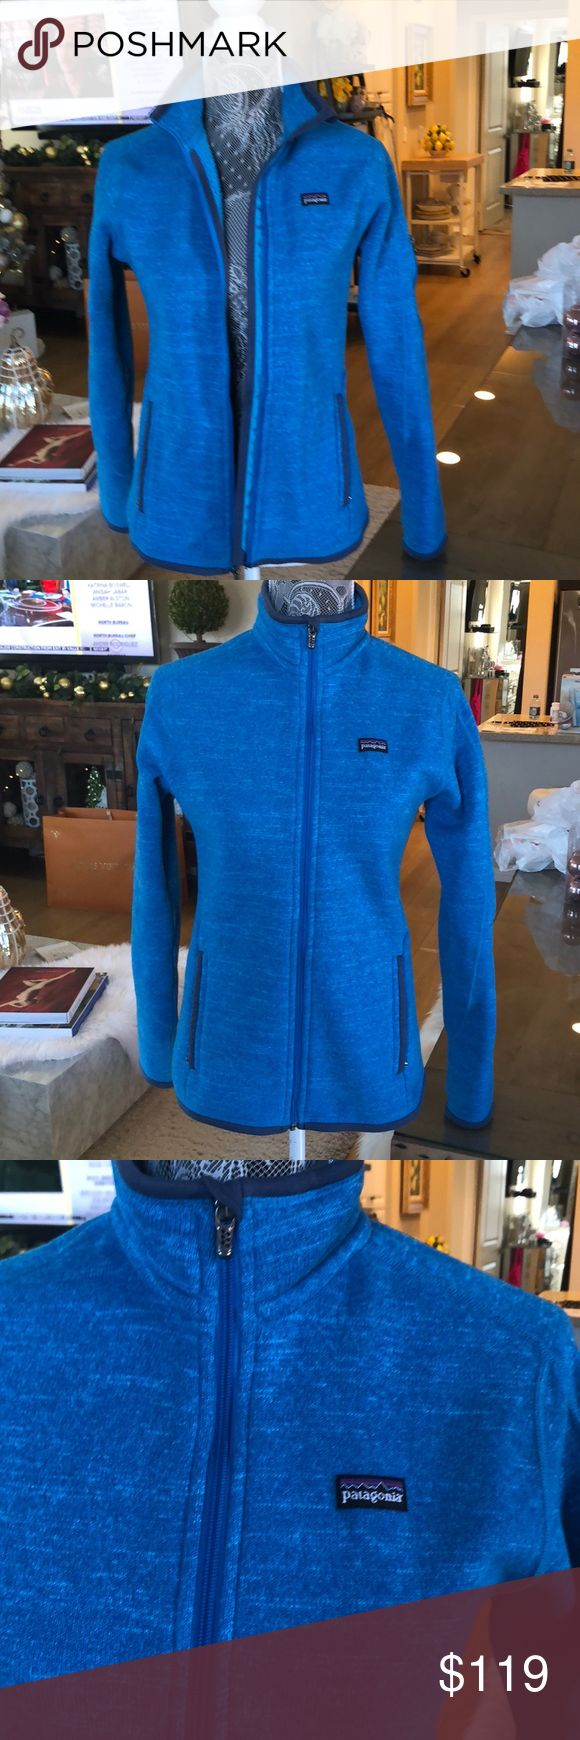 FLASH SALE🎉Patagonia Better Sweater Fleece Jacket Patagonia Women's Better Sweater Fleece Jacket. This jacket is in new excellent condition only worn once. Size Small Patagonia Jackets & Coats